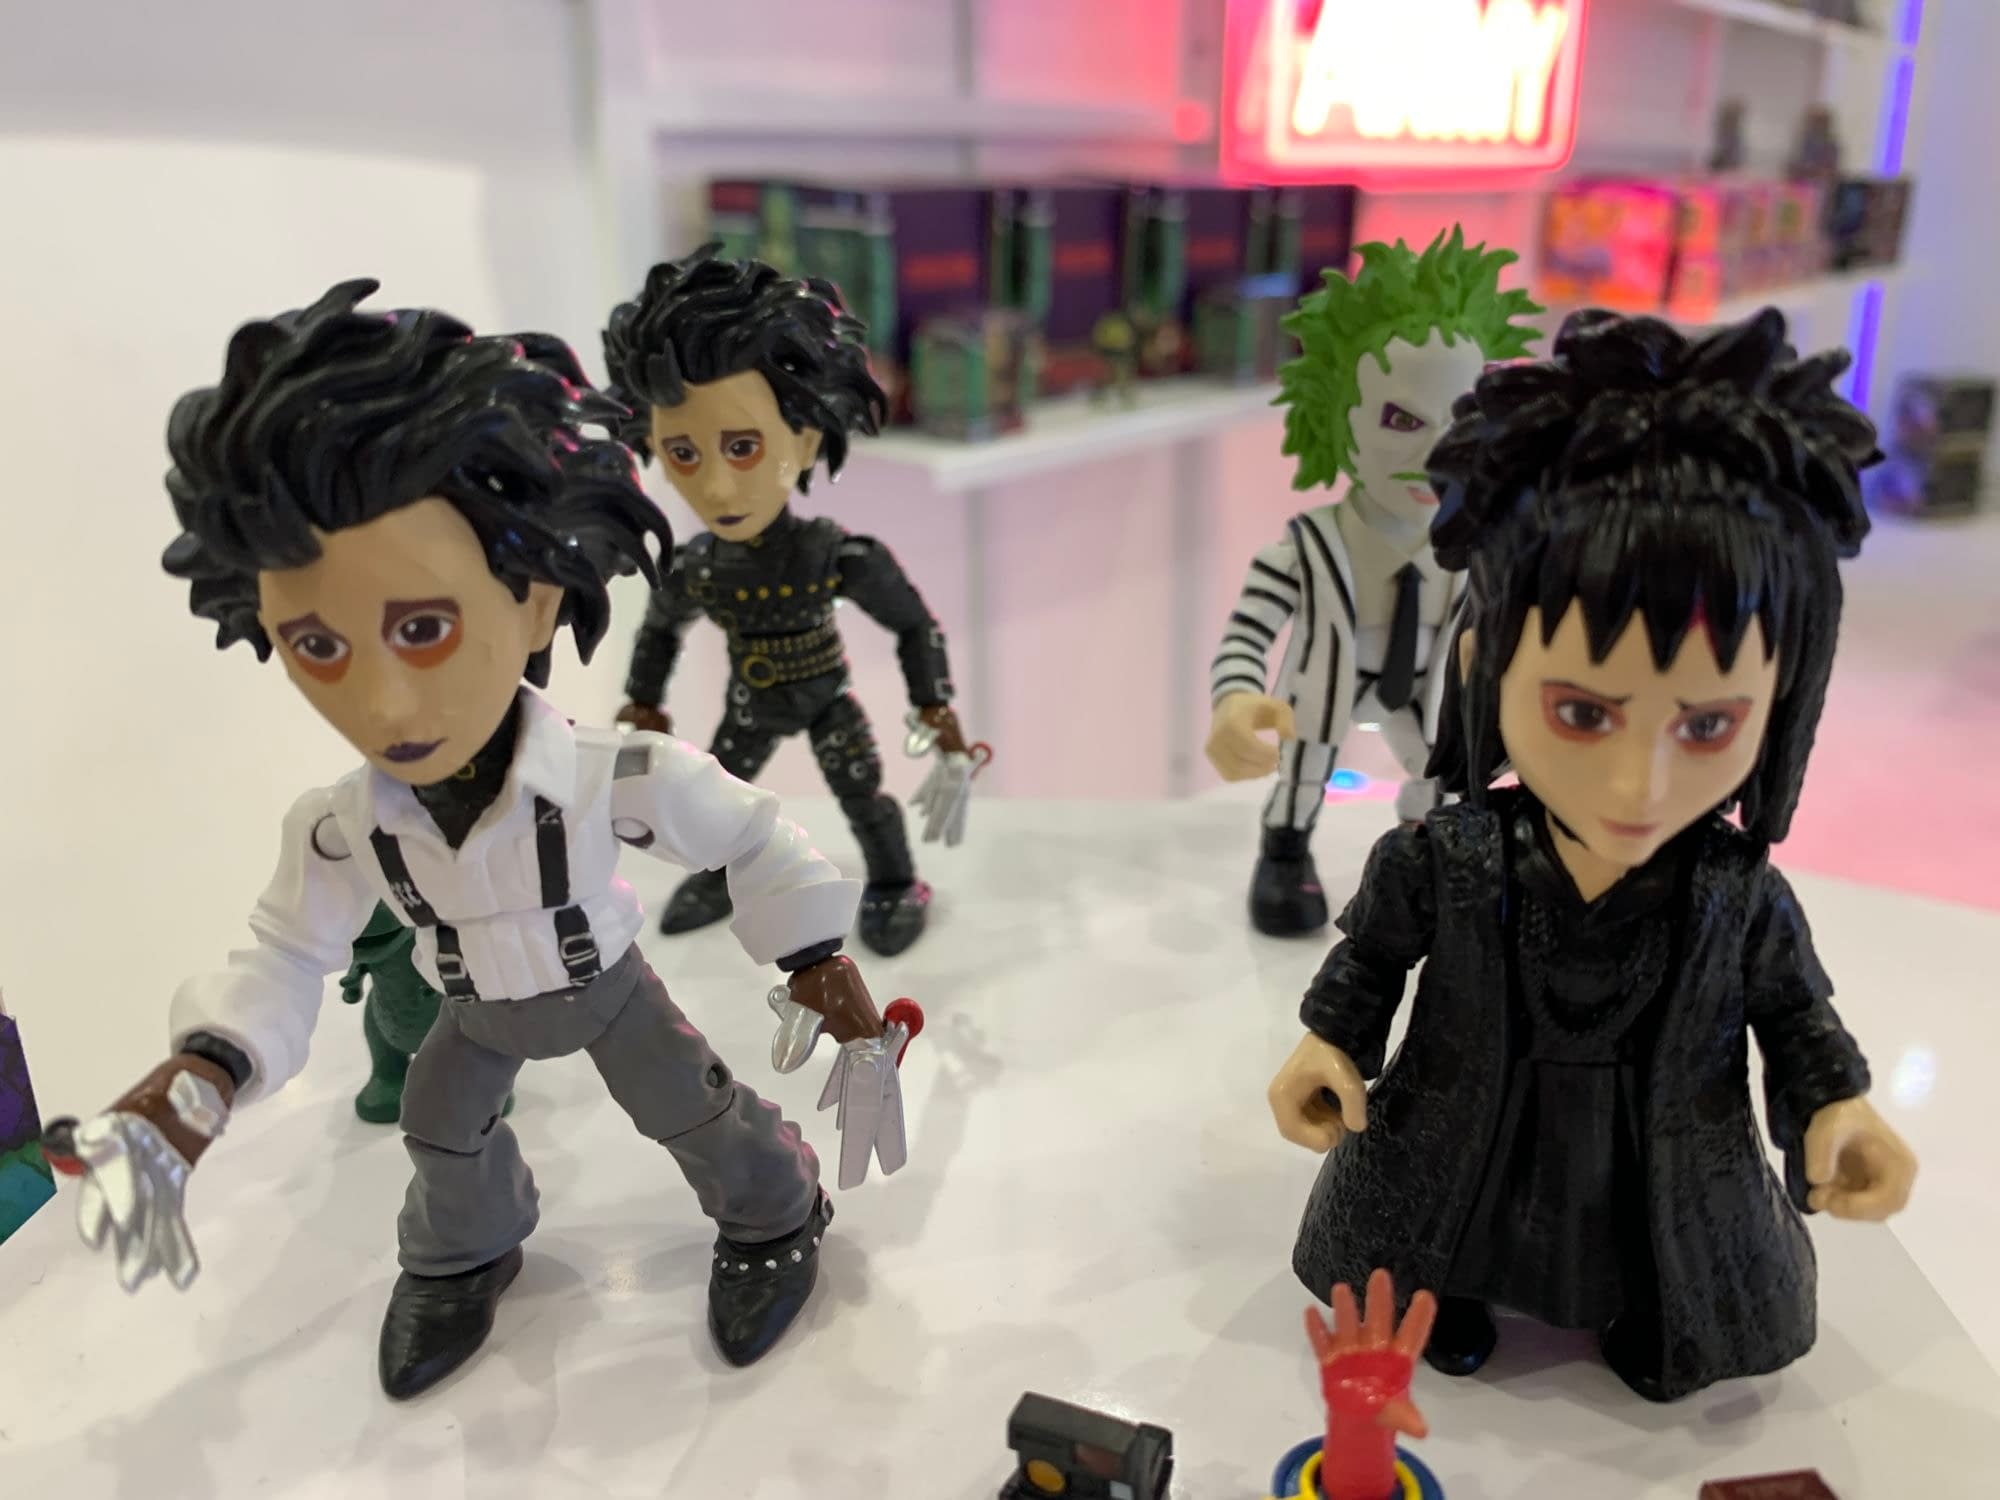 New York Toy Fair: 32 Photos from Loyal Subjects Booth